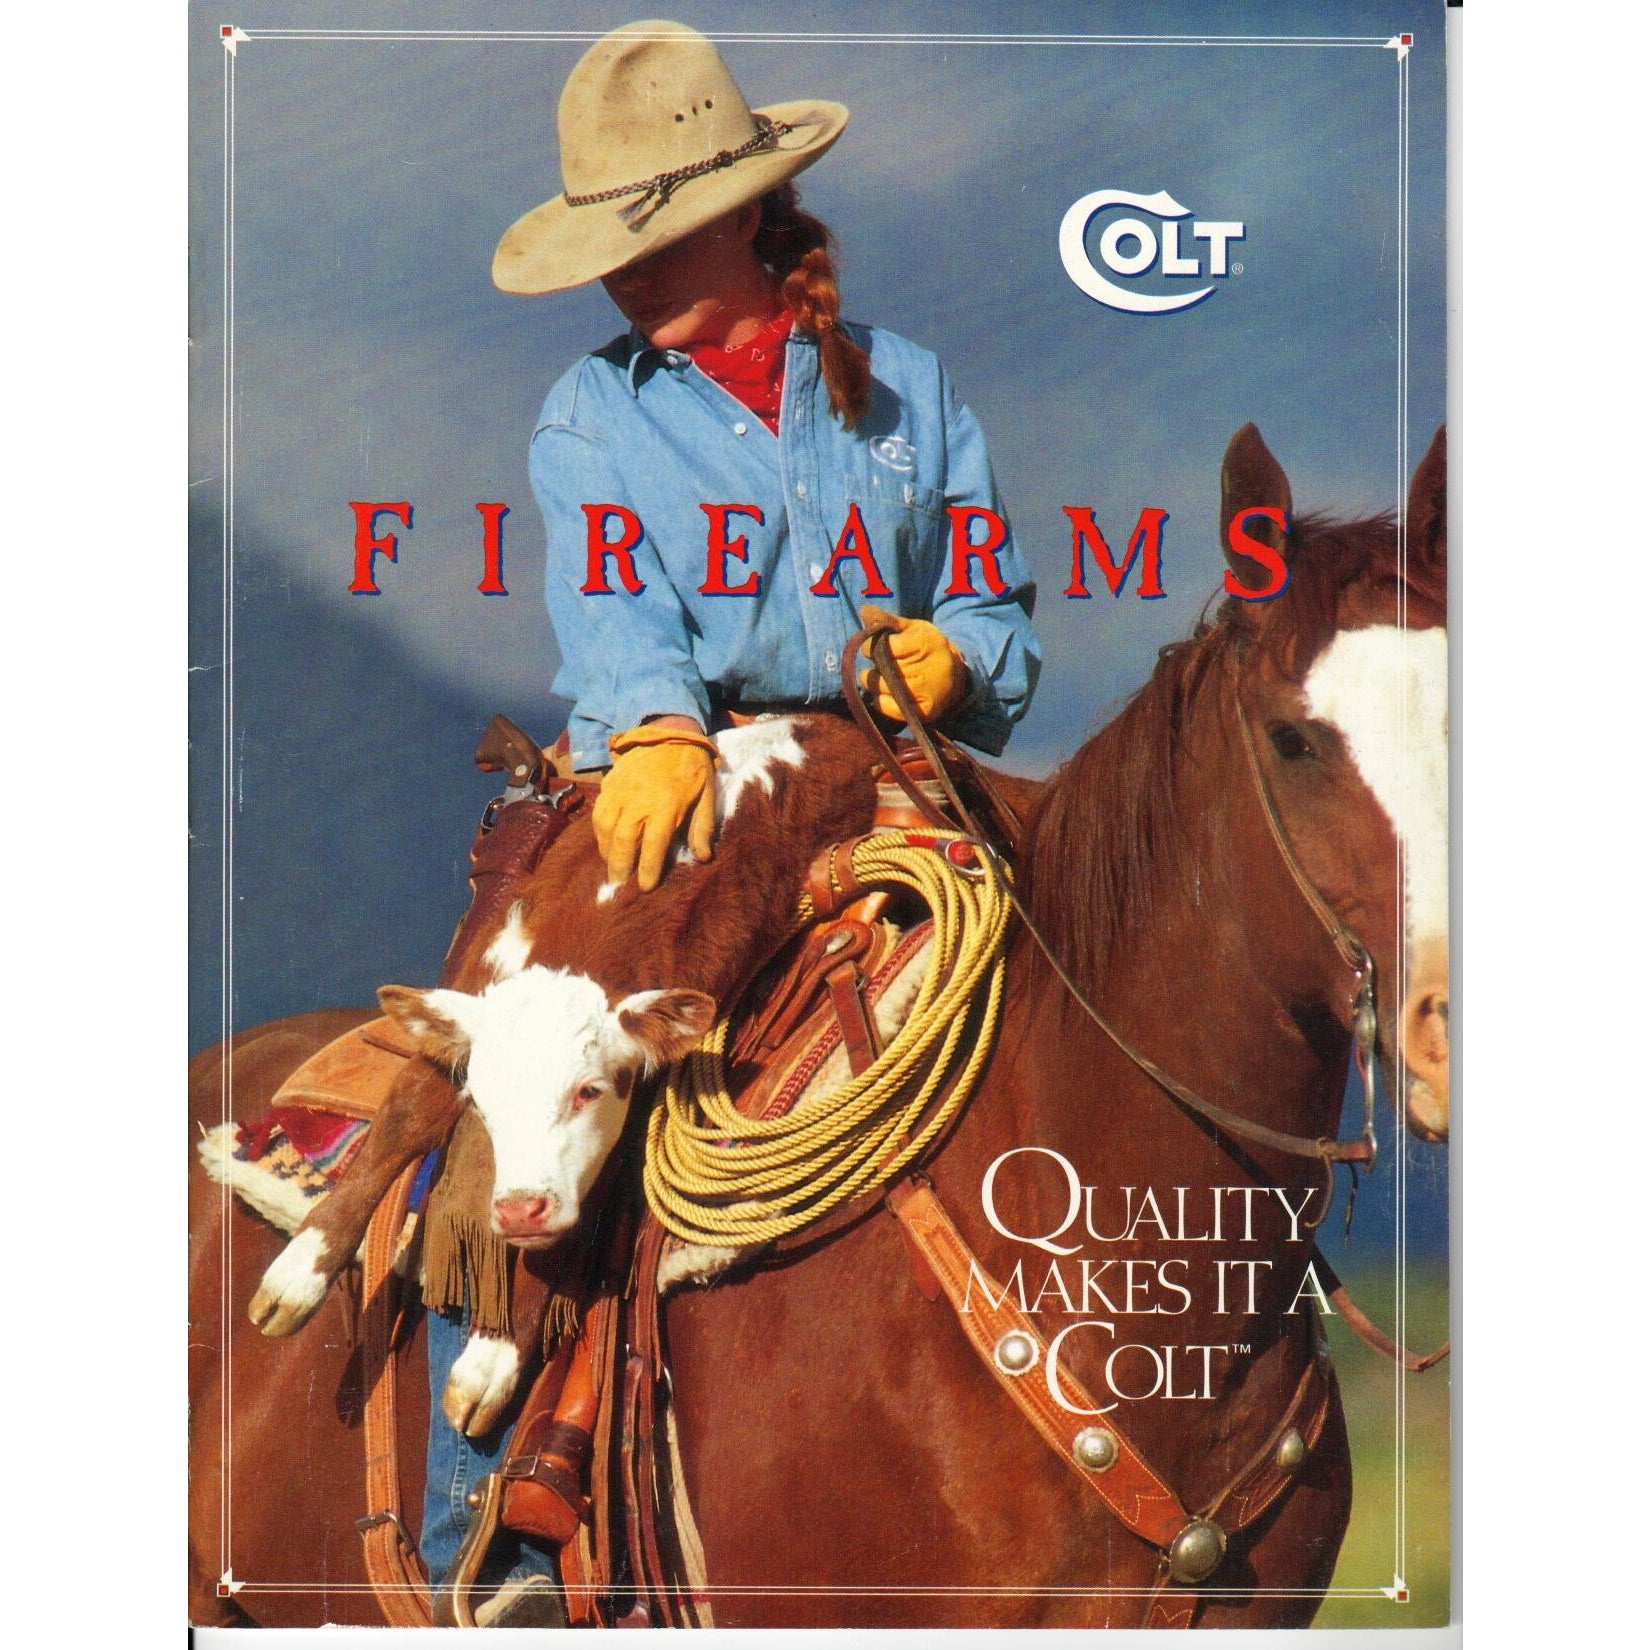 Colt Firearms 'Quality Makes It A Colt' 1995,Catalogues & Brochures- Canada Brass